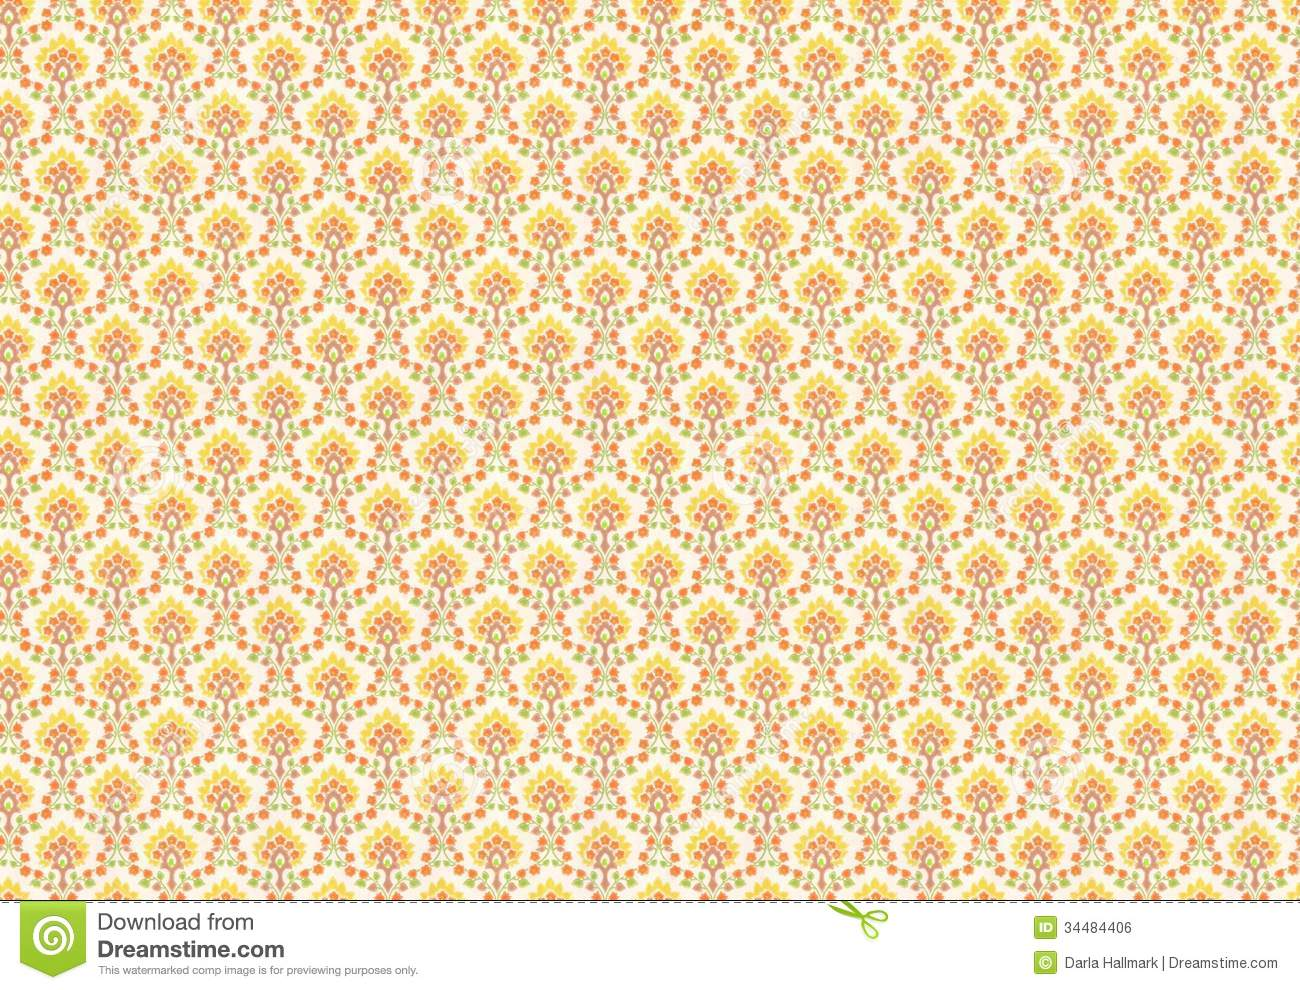 Cheap Wall Paper seventies wallpaper royalty free stock image - image: 34484406